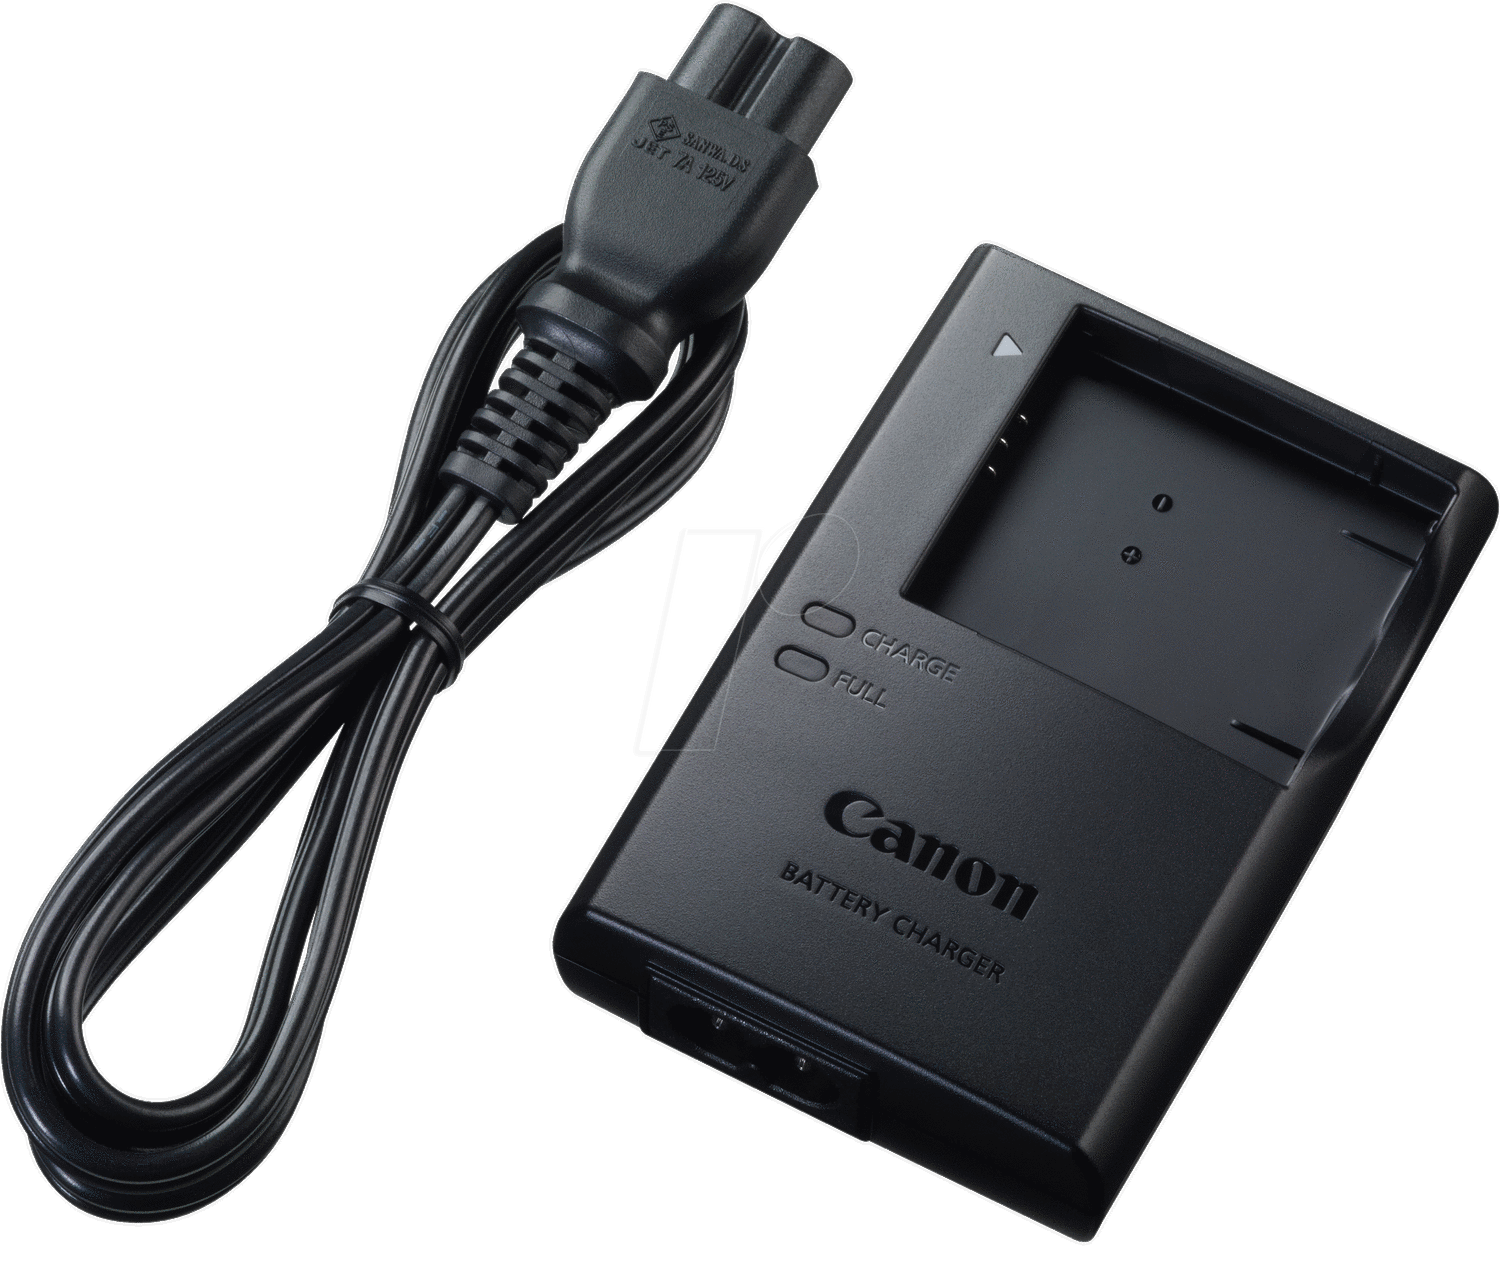 Canon Cb 2lfe Battery Charger For Canon Cameras At